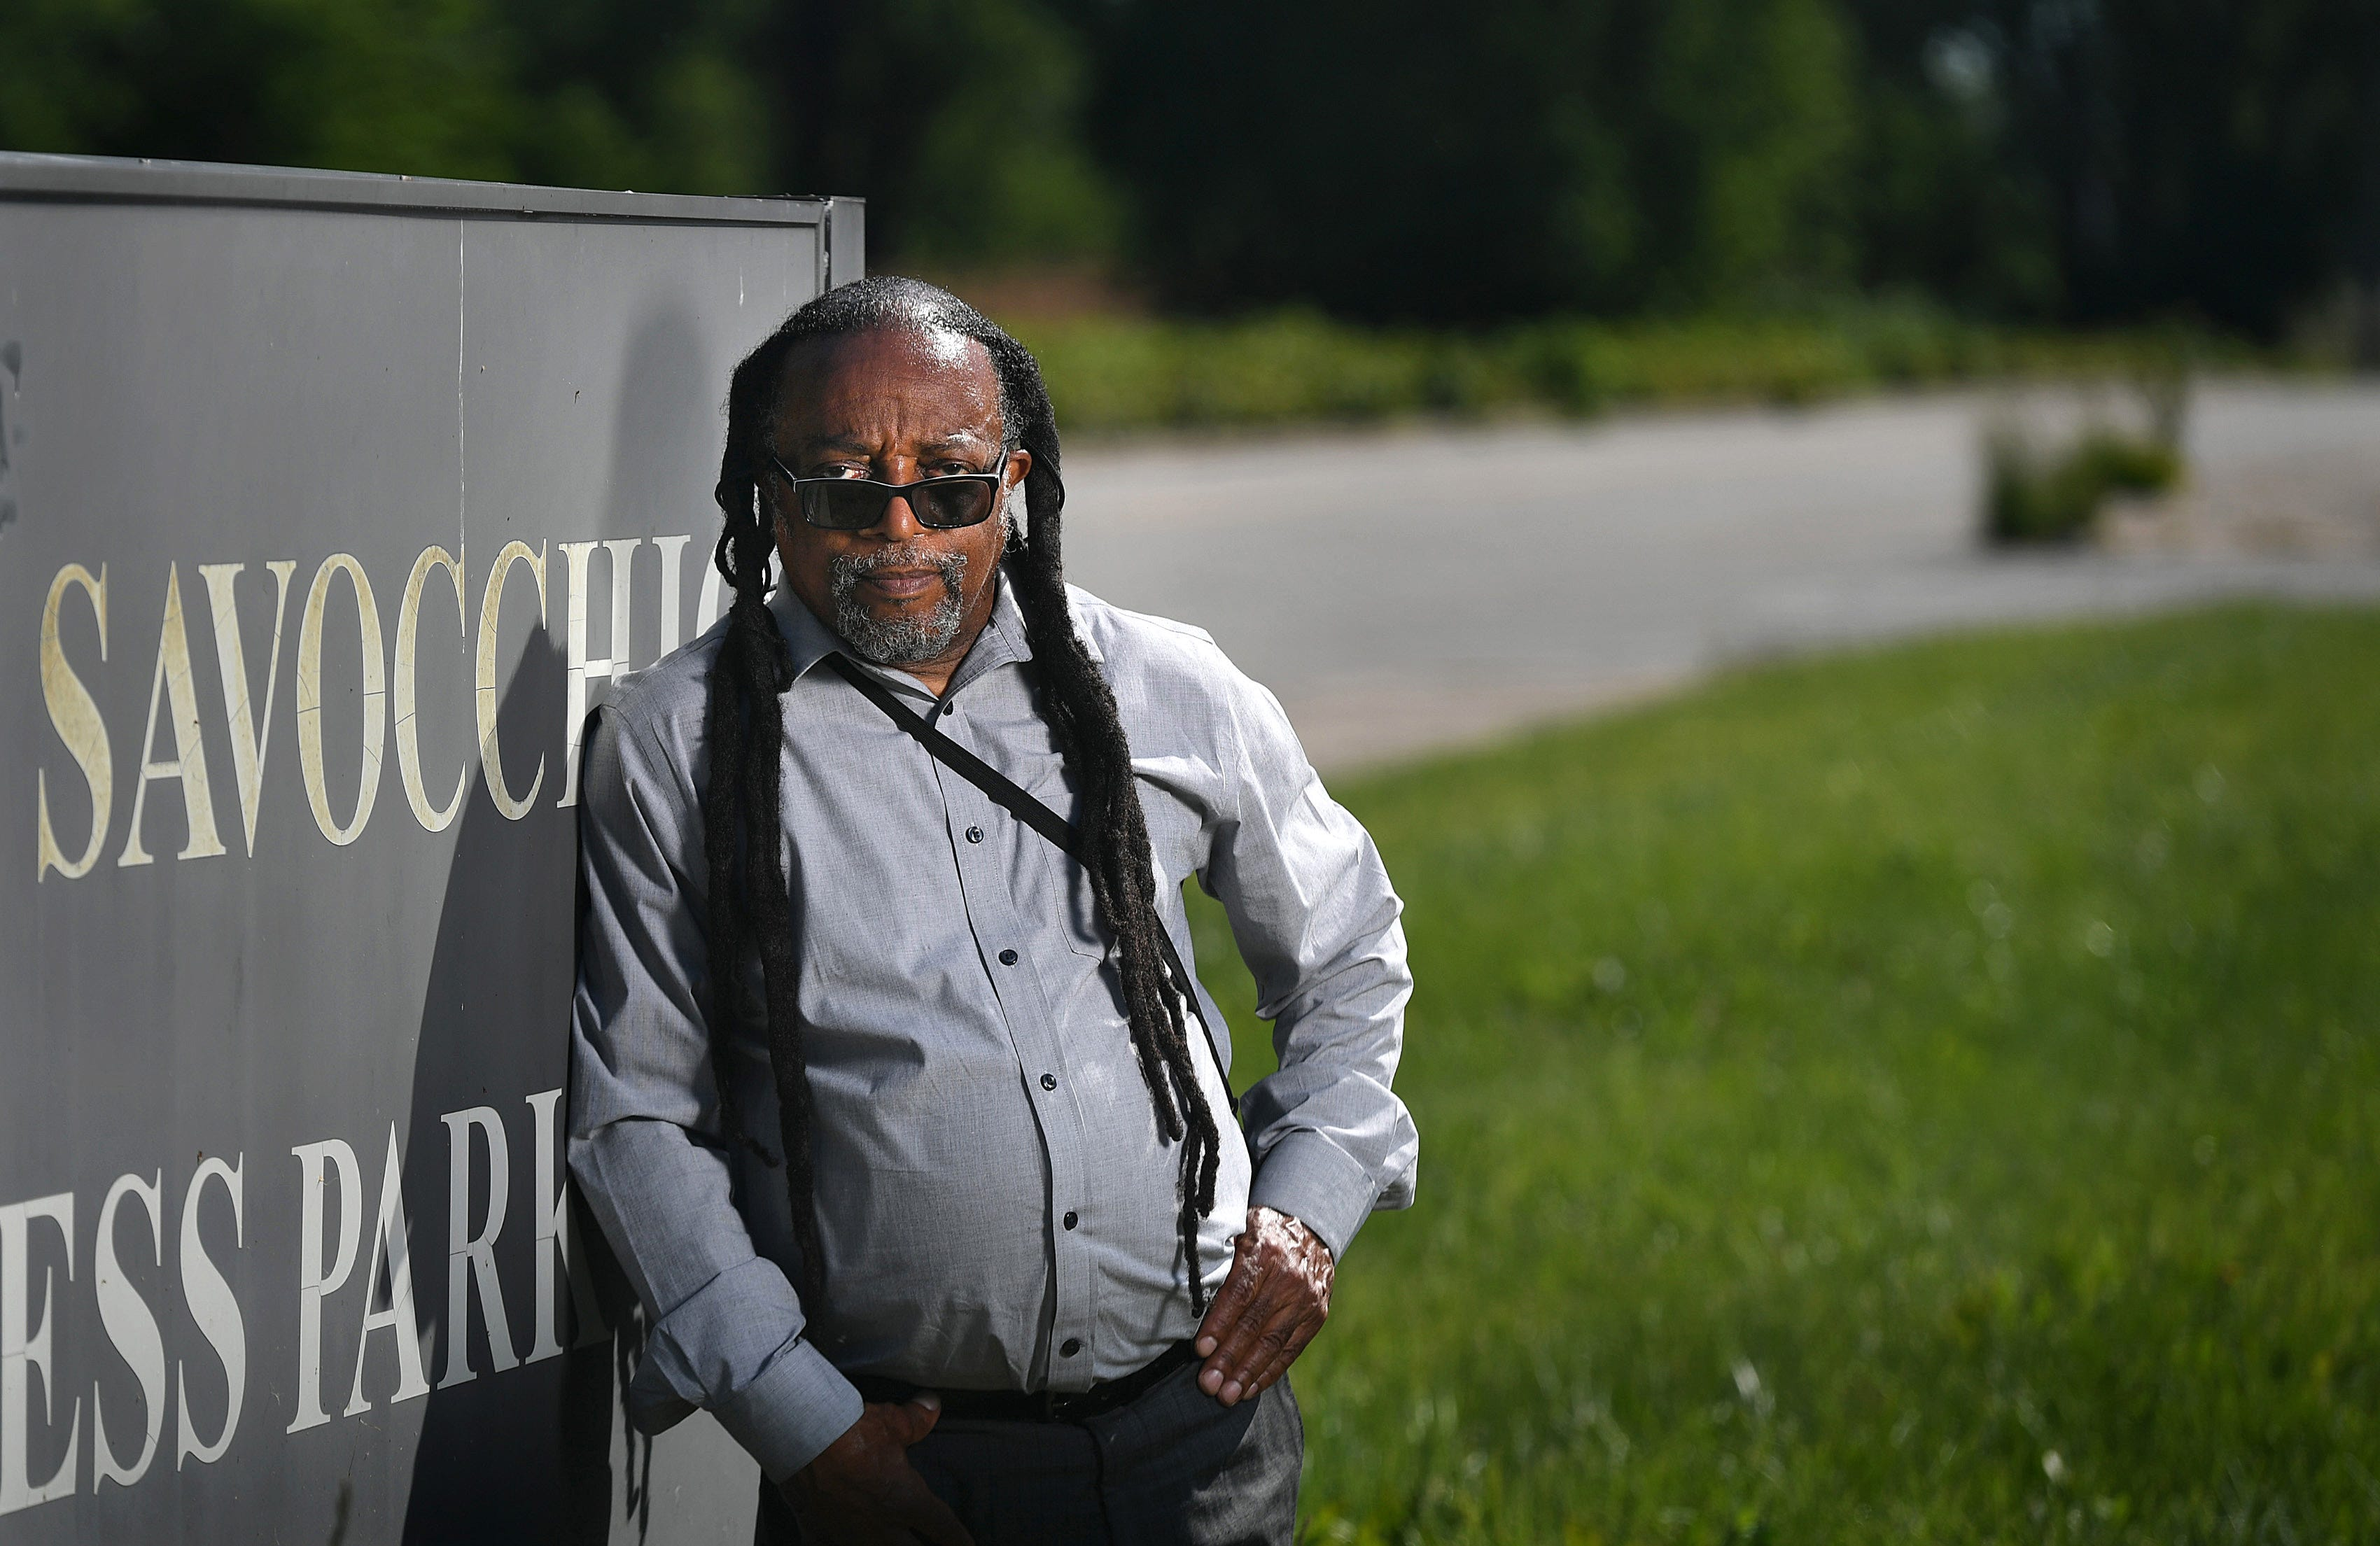 Gary Horton, 68, president of the Urban Erie Community Development Corp., is part of a group that wants to develop one of the poorest neighborhoods in Erie, Pennsylvania, into a health and wellness center, an urban farming facility and a solar panel network on the 25-acre Savocchio Park property.